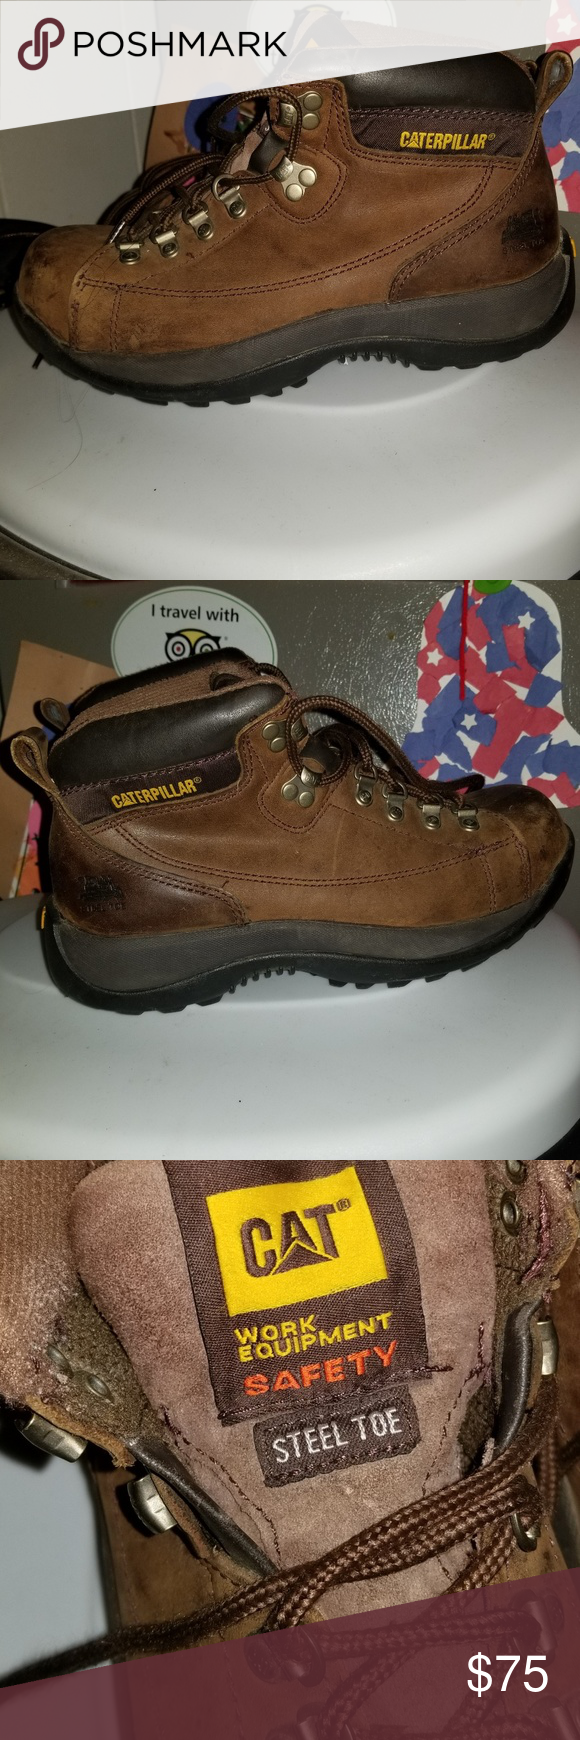 Mens size 8 Caterpillar steel toe work boots Only worn a